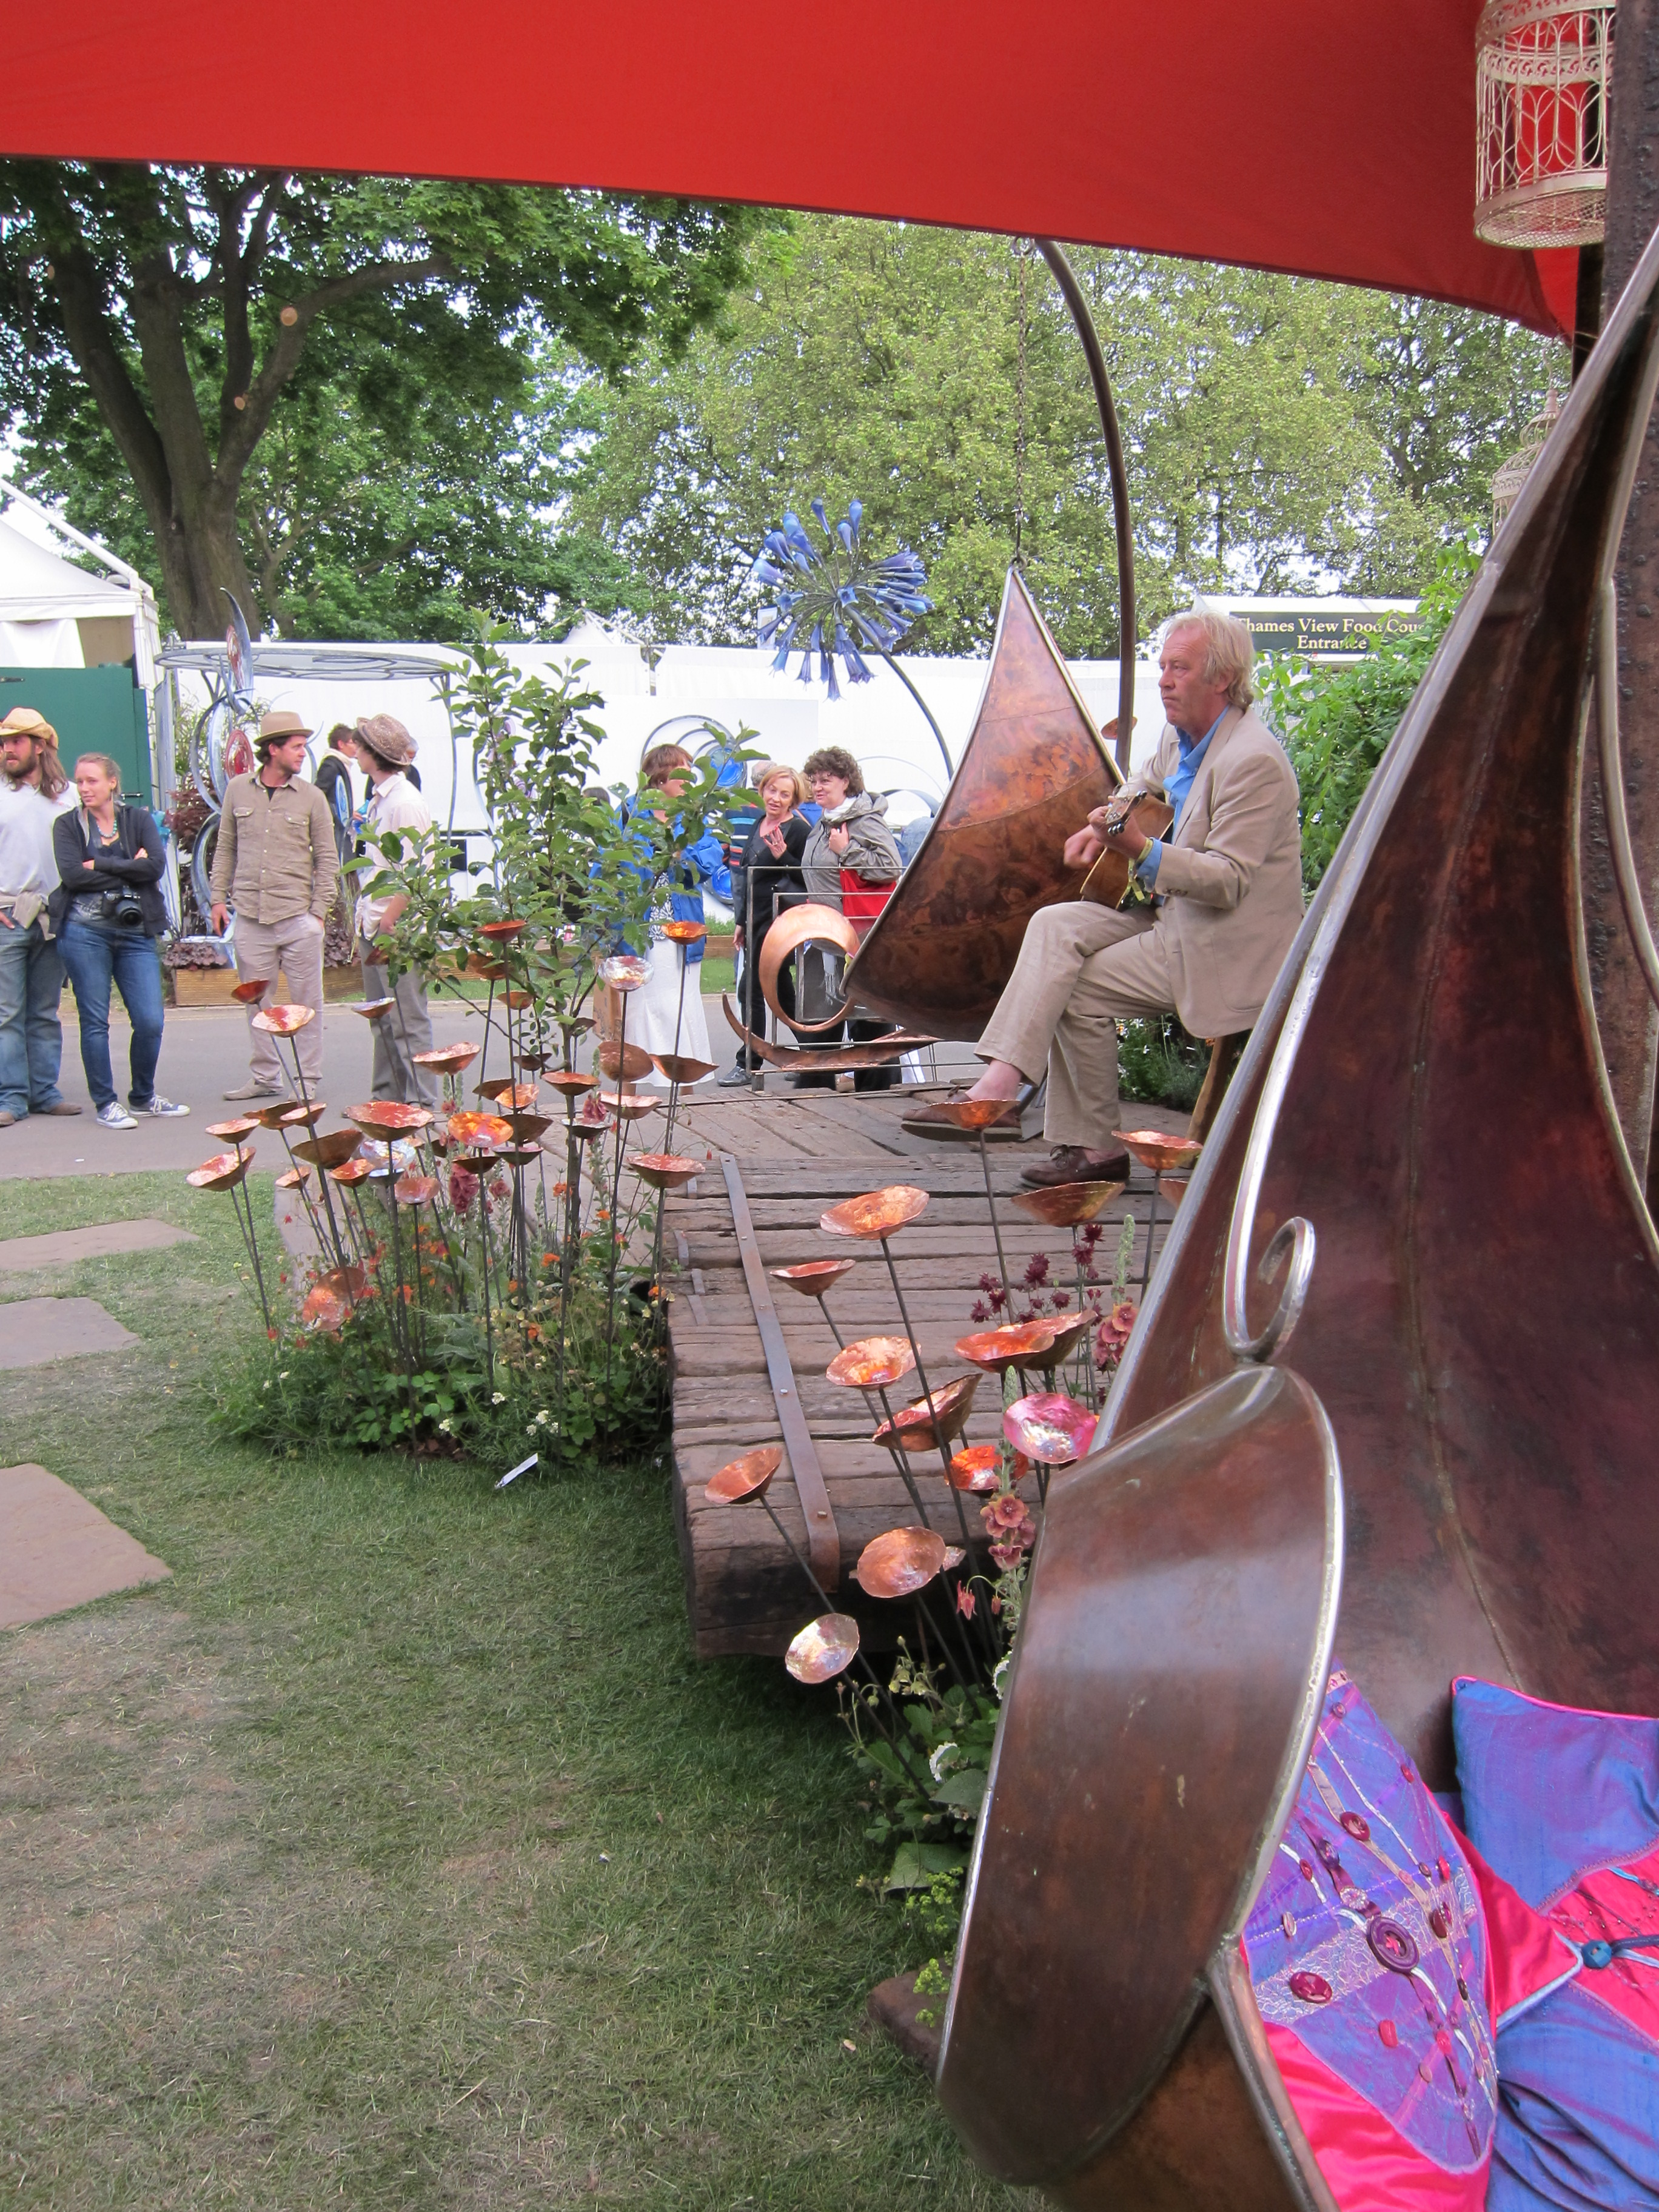 copper garden accessories and hanging chairs